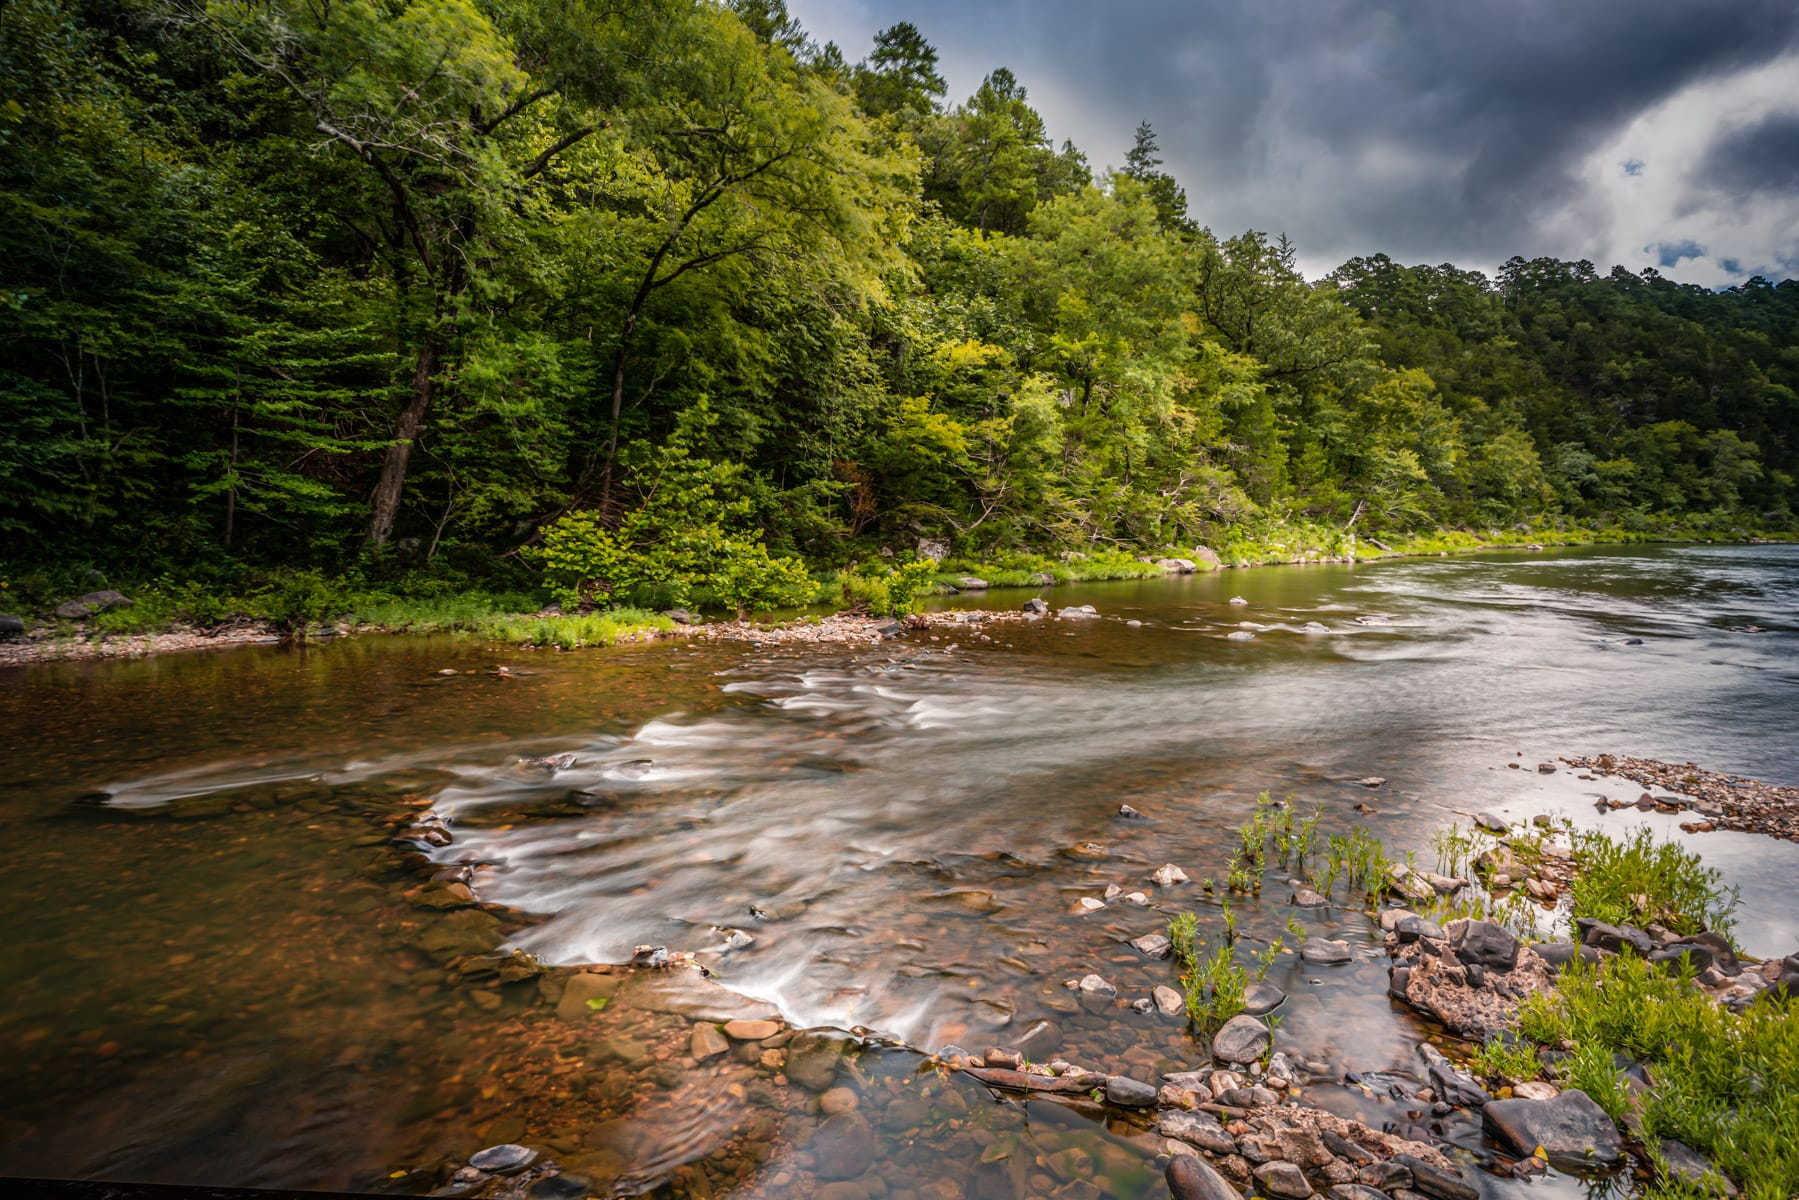 The Cossatot River flows through the Ouachita National Forest in Western Arkansas.